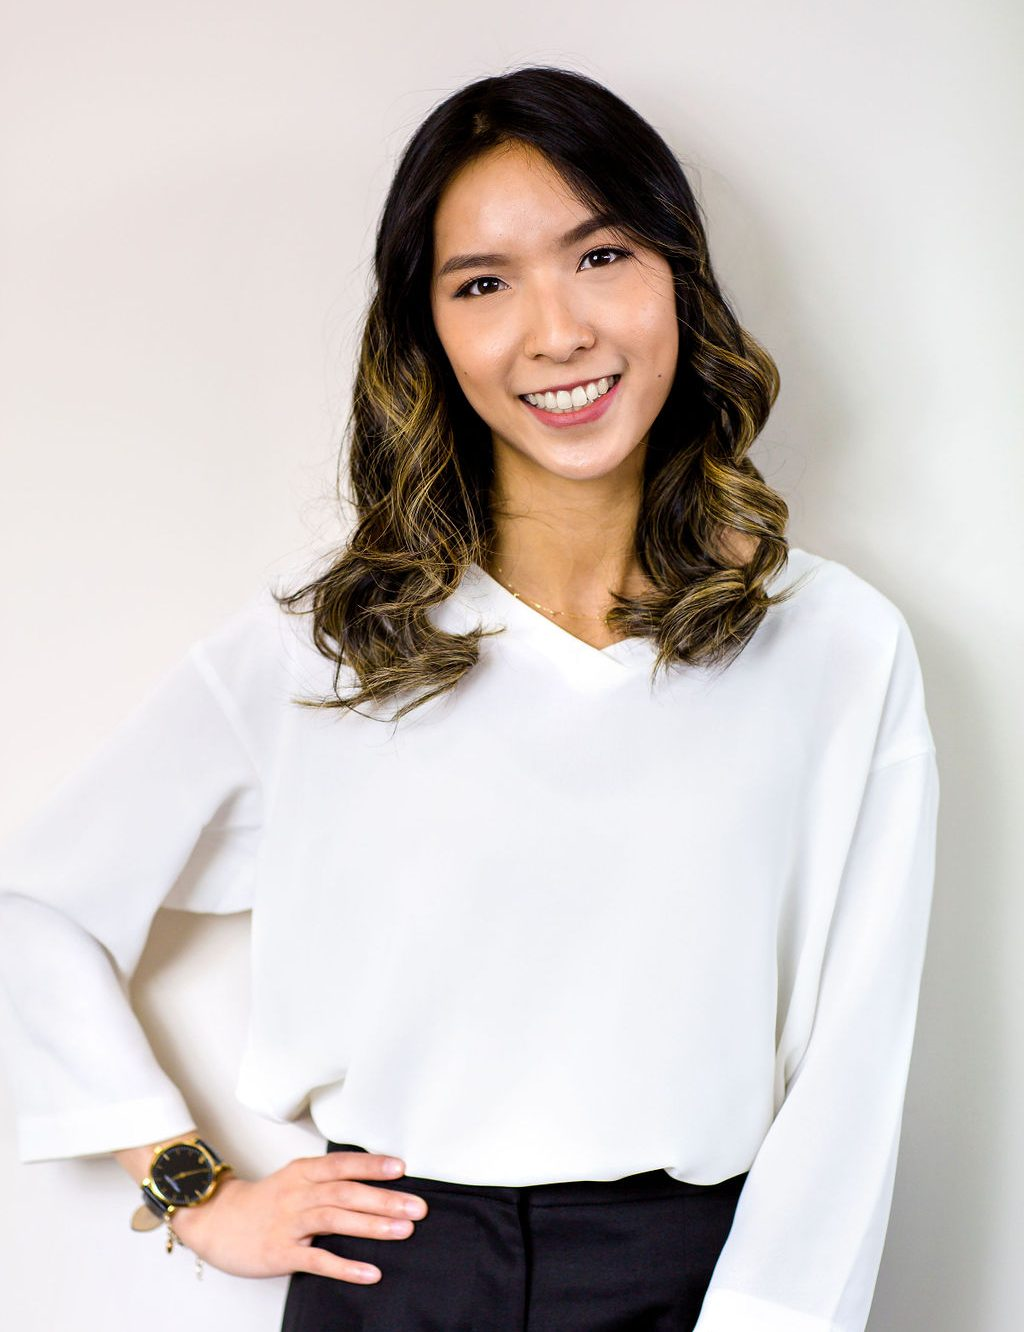 Megan Nguyen, commercial lawyer and expert in retail law